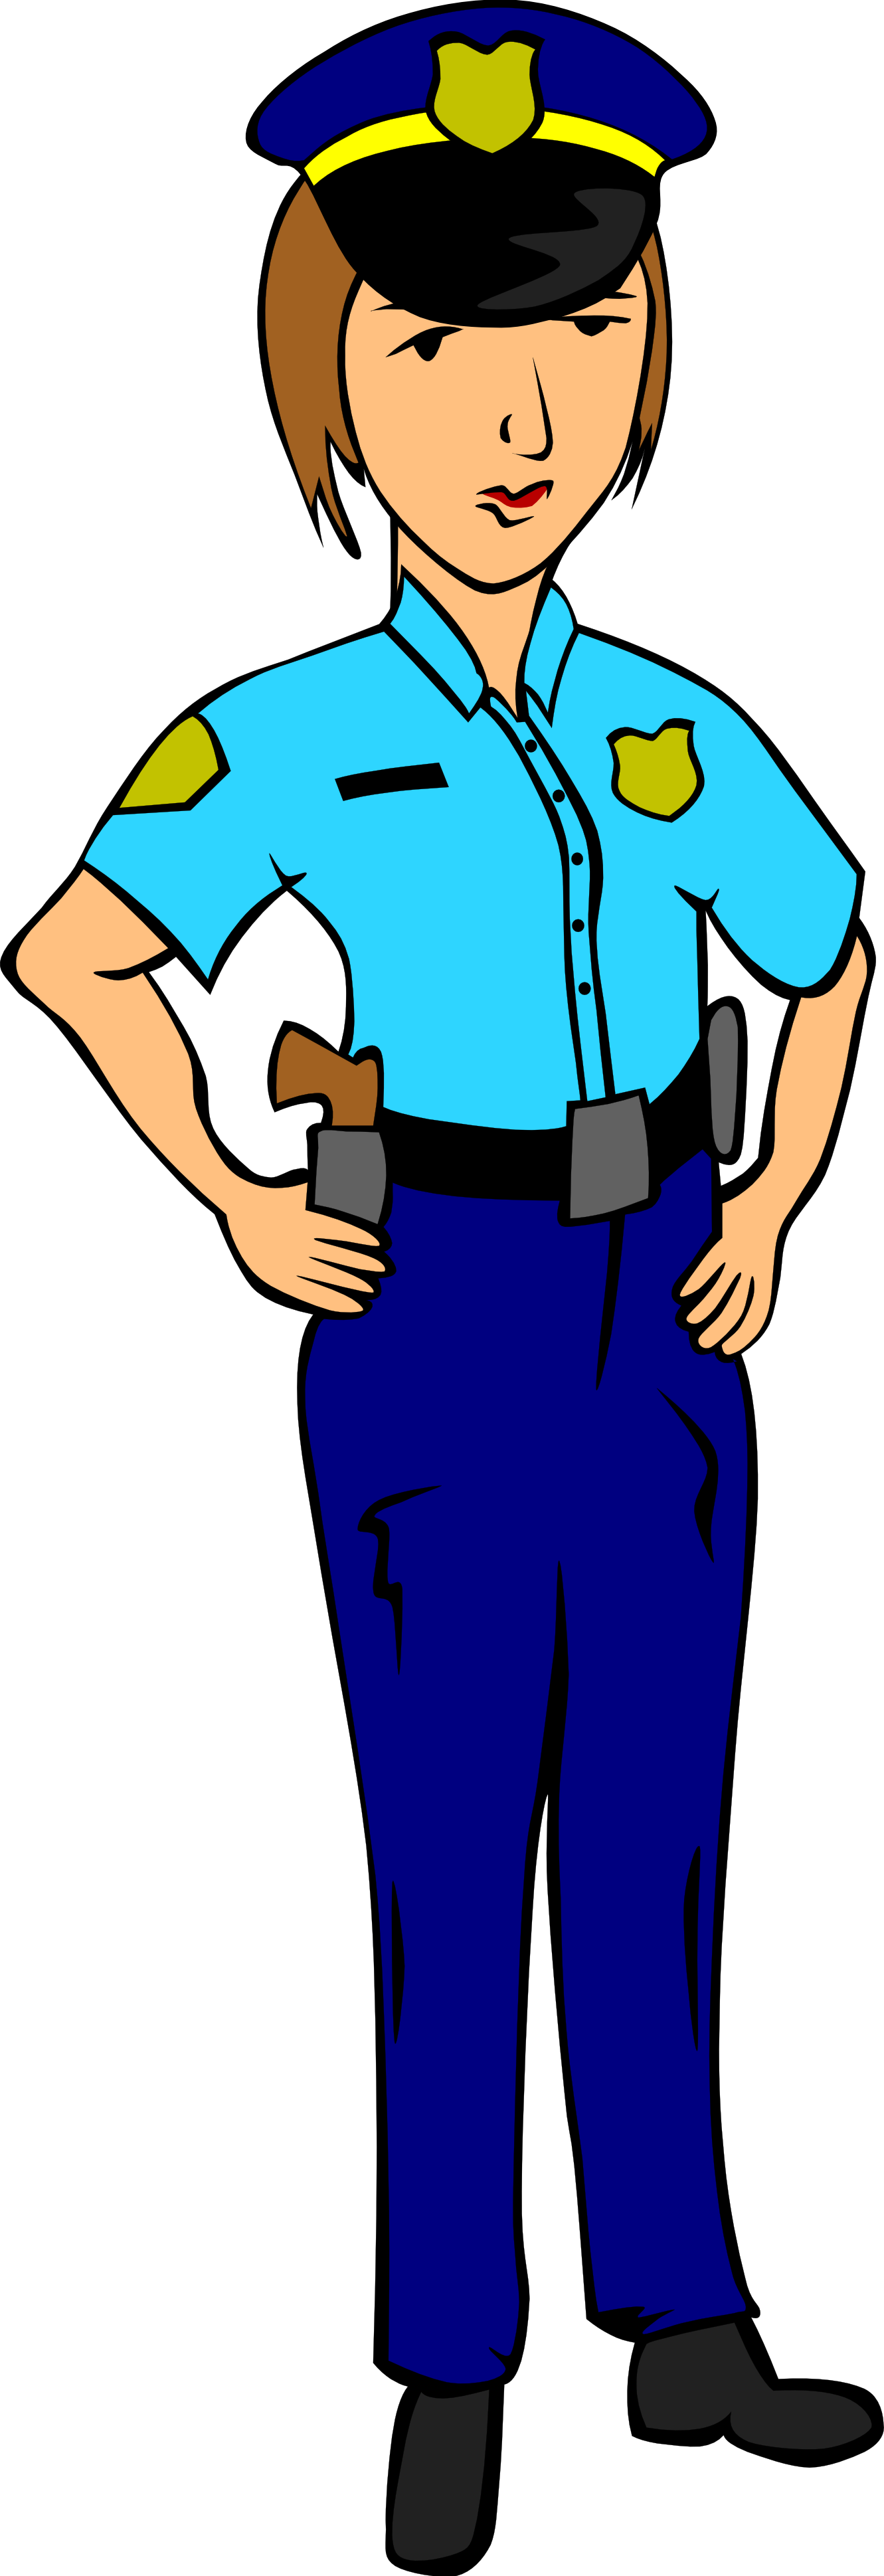 free download Police library free images. Patrol clipart patrol officer